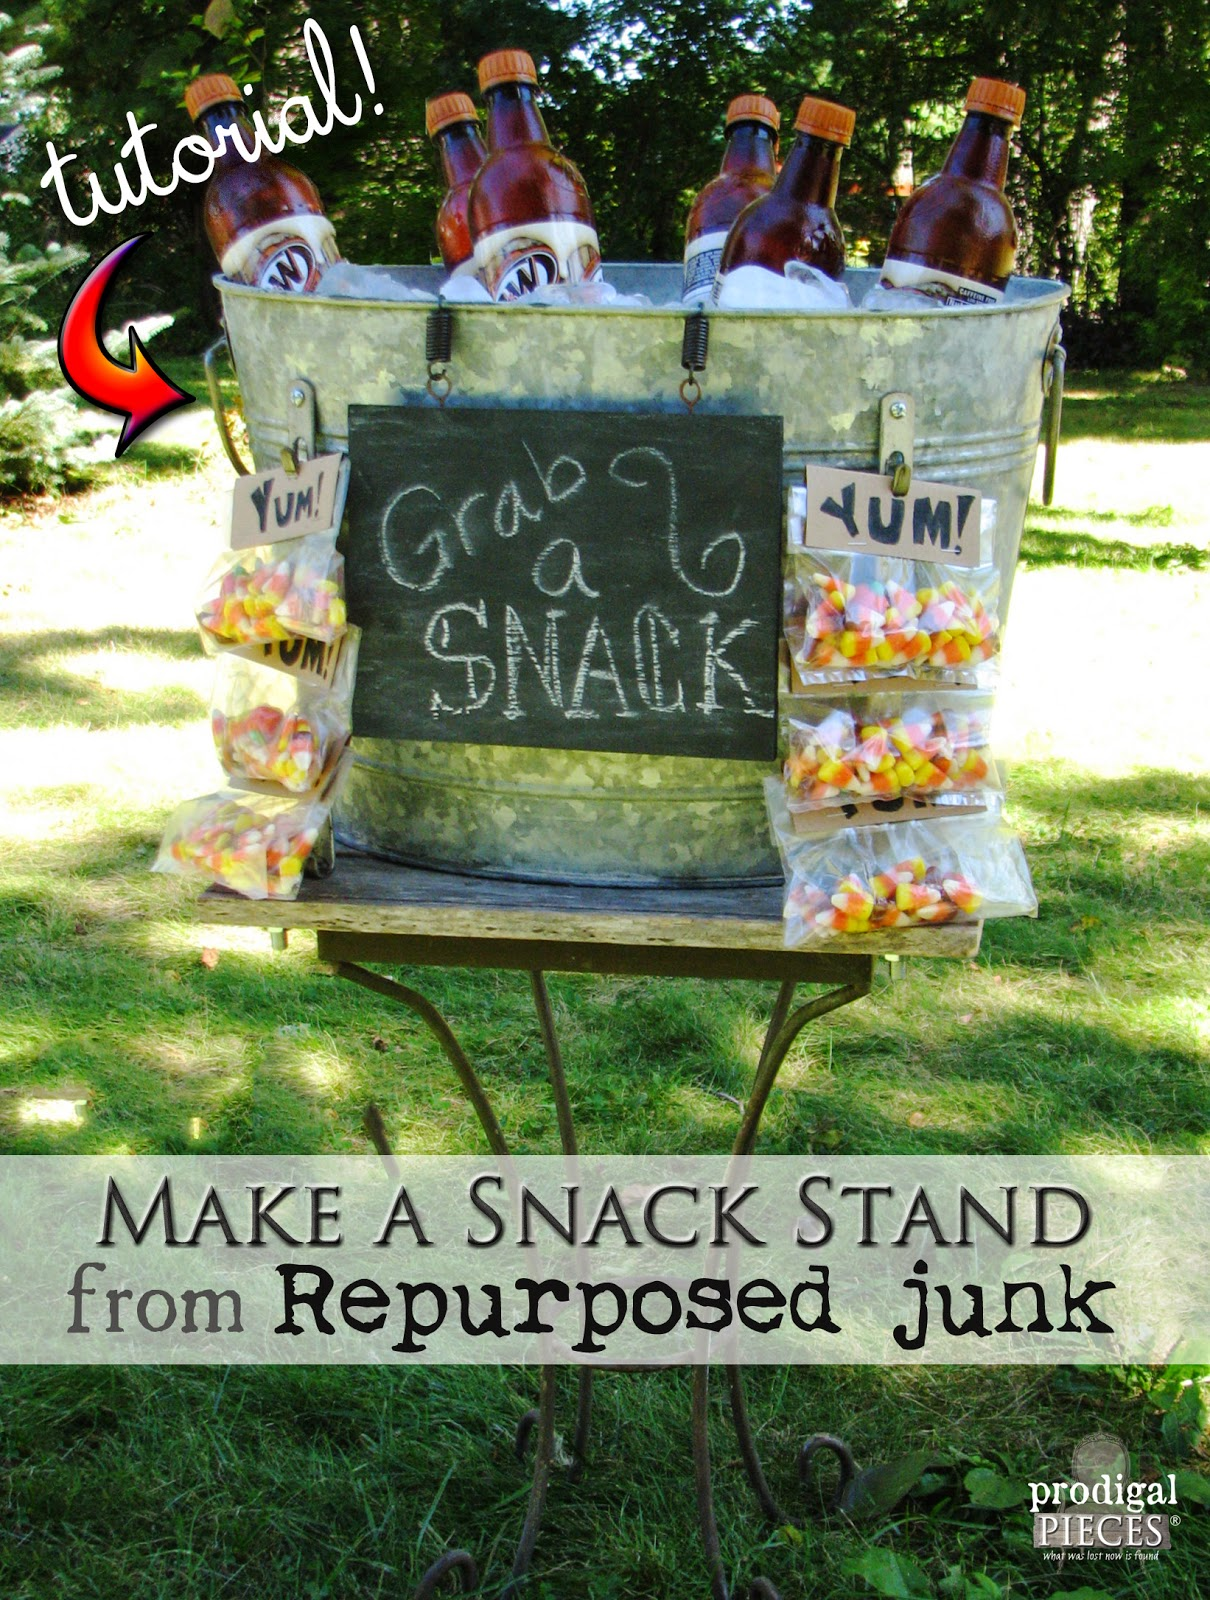 DIY Repurposed Snack Stand Tutorial by Prodigal Pieces http://www.prodigalpieces.com